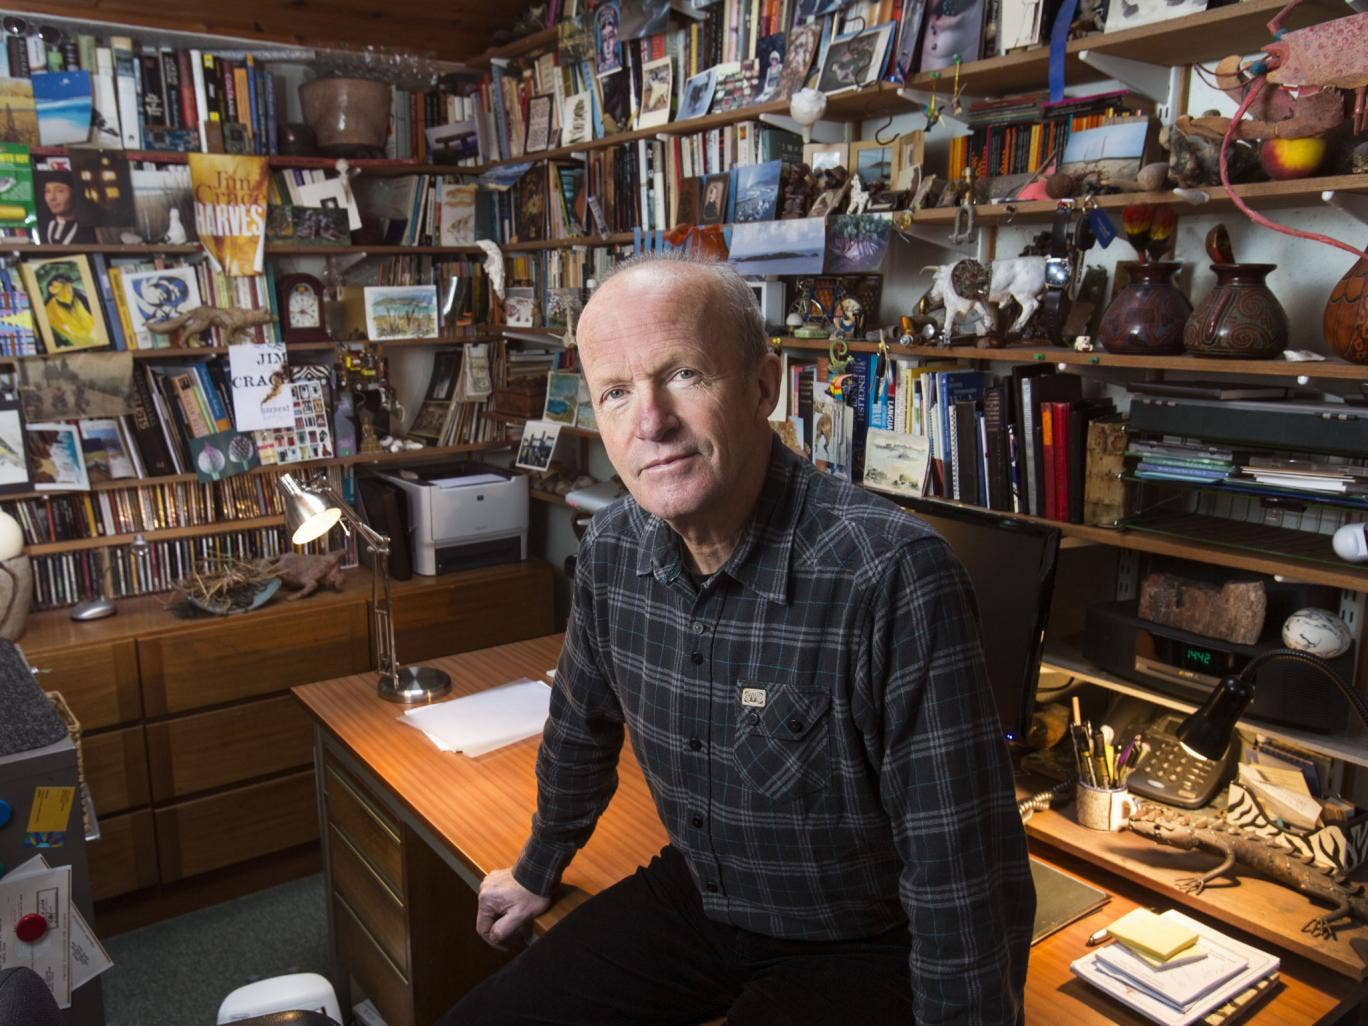 Writer's den: Jim Crace with the geckos, twigs, and fossils in his study